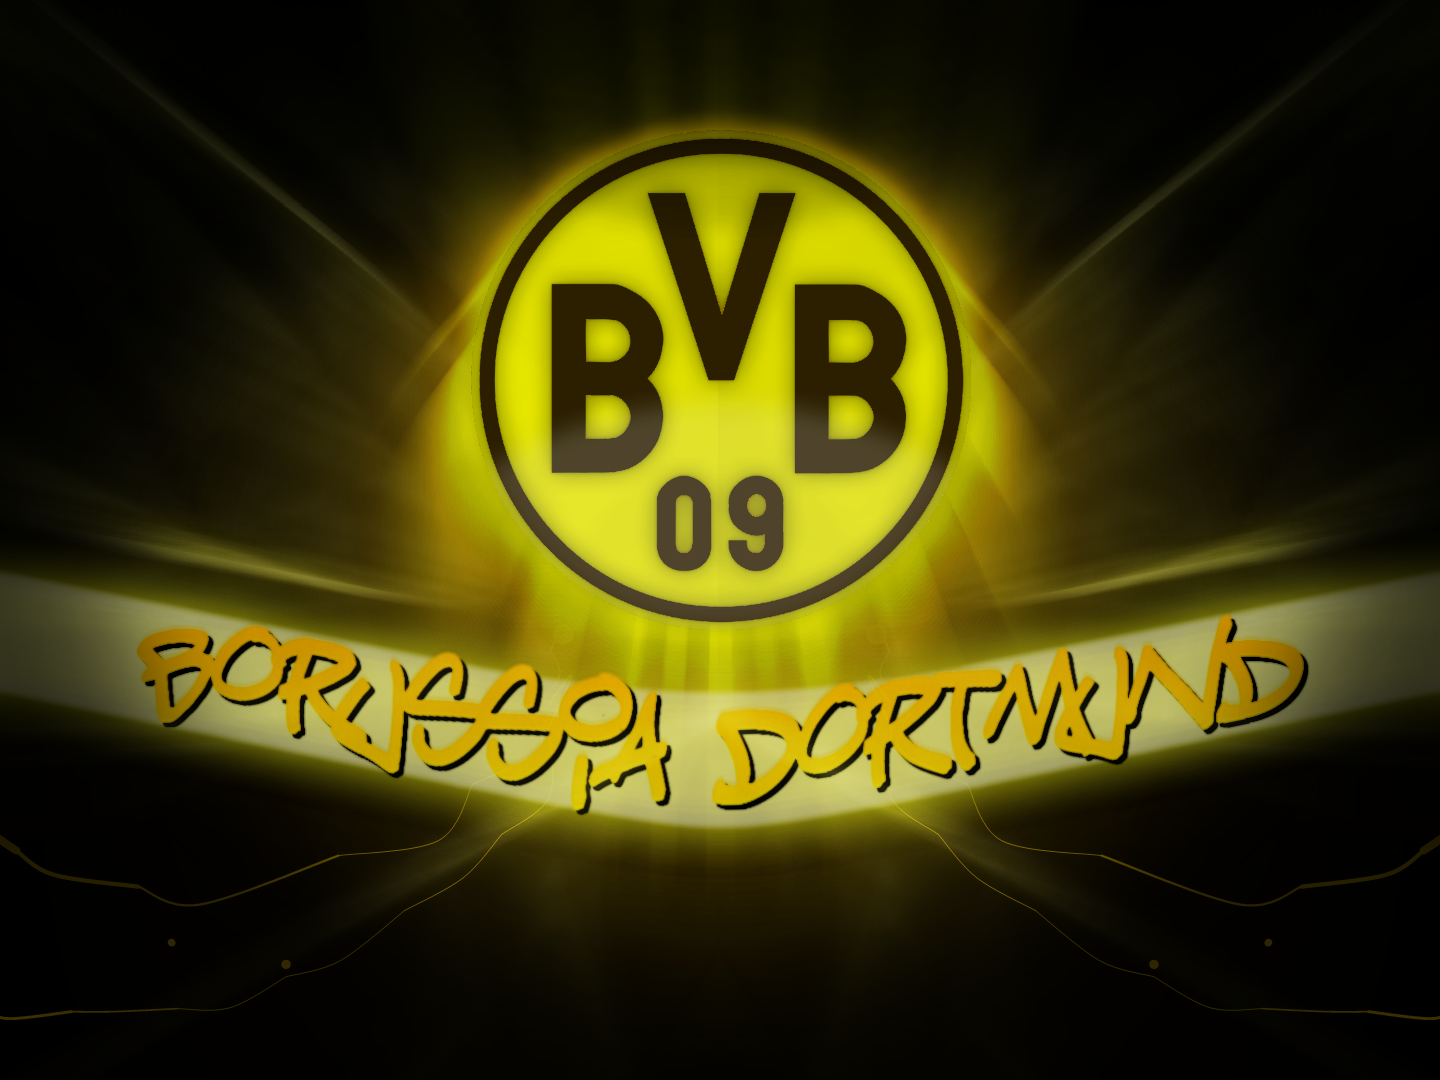 Borussia dortmund football wallpaper collection 11 wallpapers borussia dortmund 3d logo wallpaper football wallpapers hd voltagebd Images